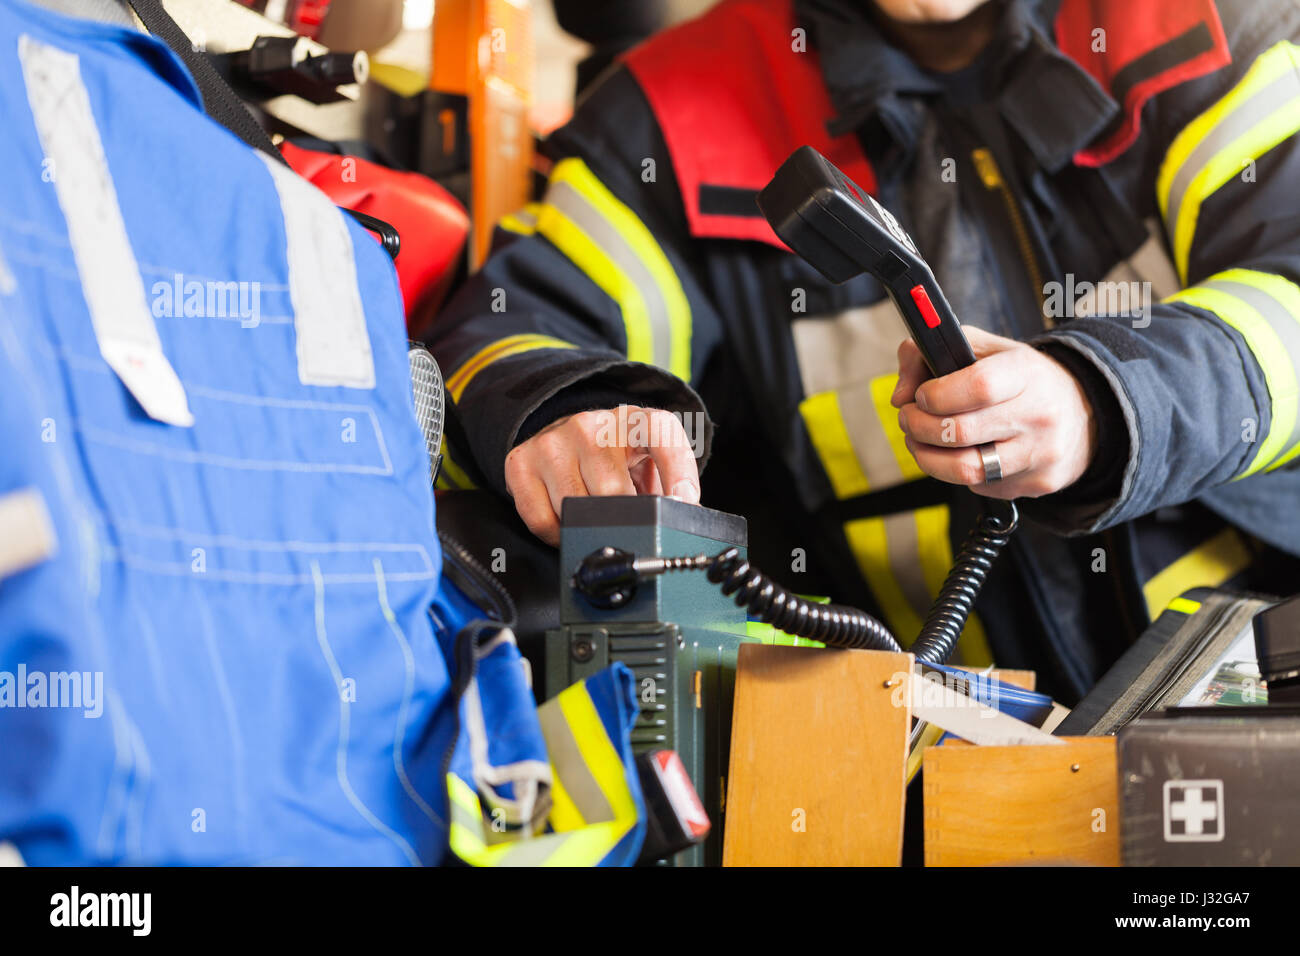 German firefighter drives in a fire truck in action and used a walkie talkie - Stock Image